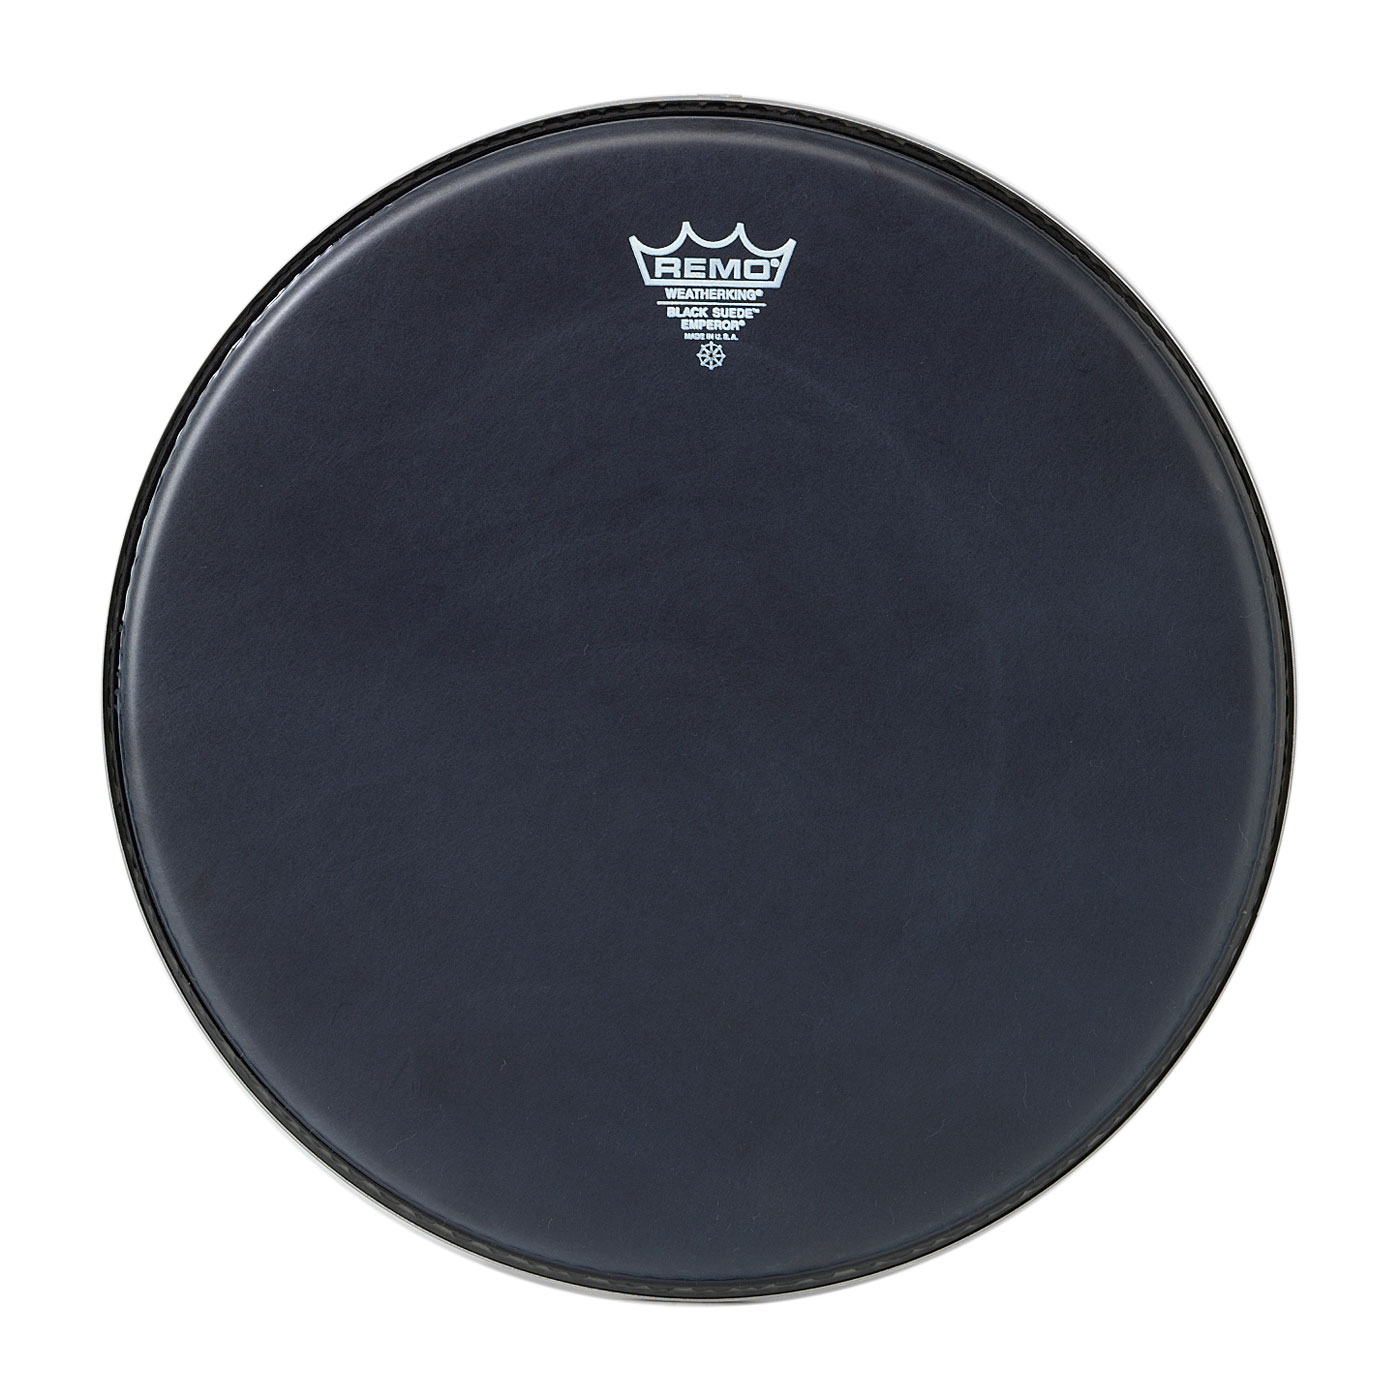 "Remo 16"" Emperor Black Suede Bass Drum Head"